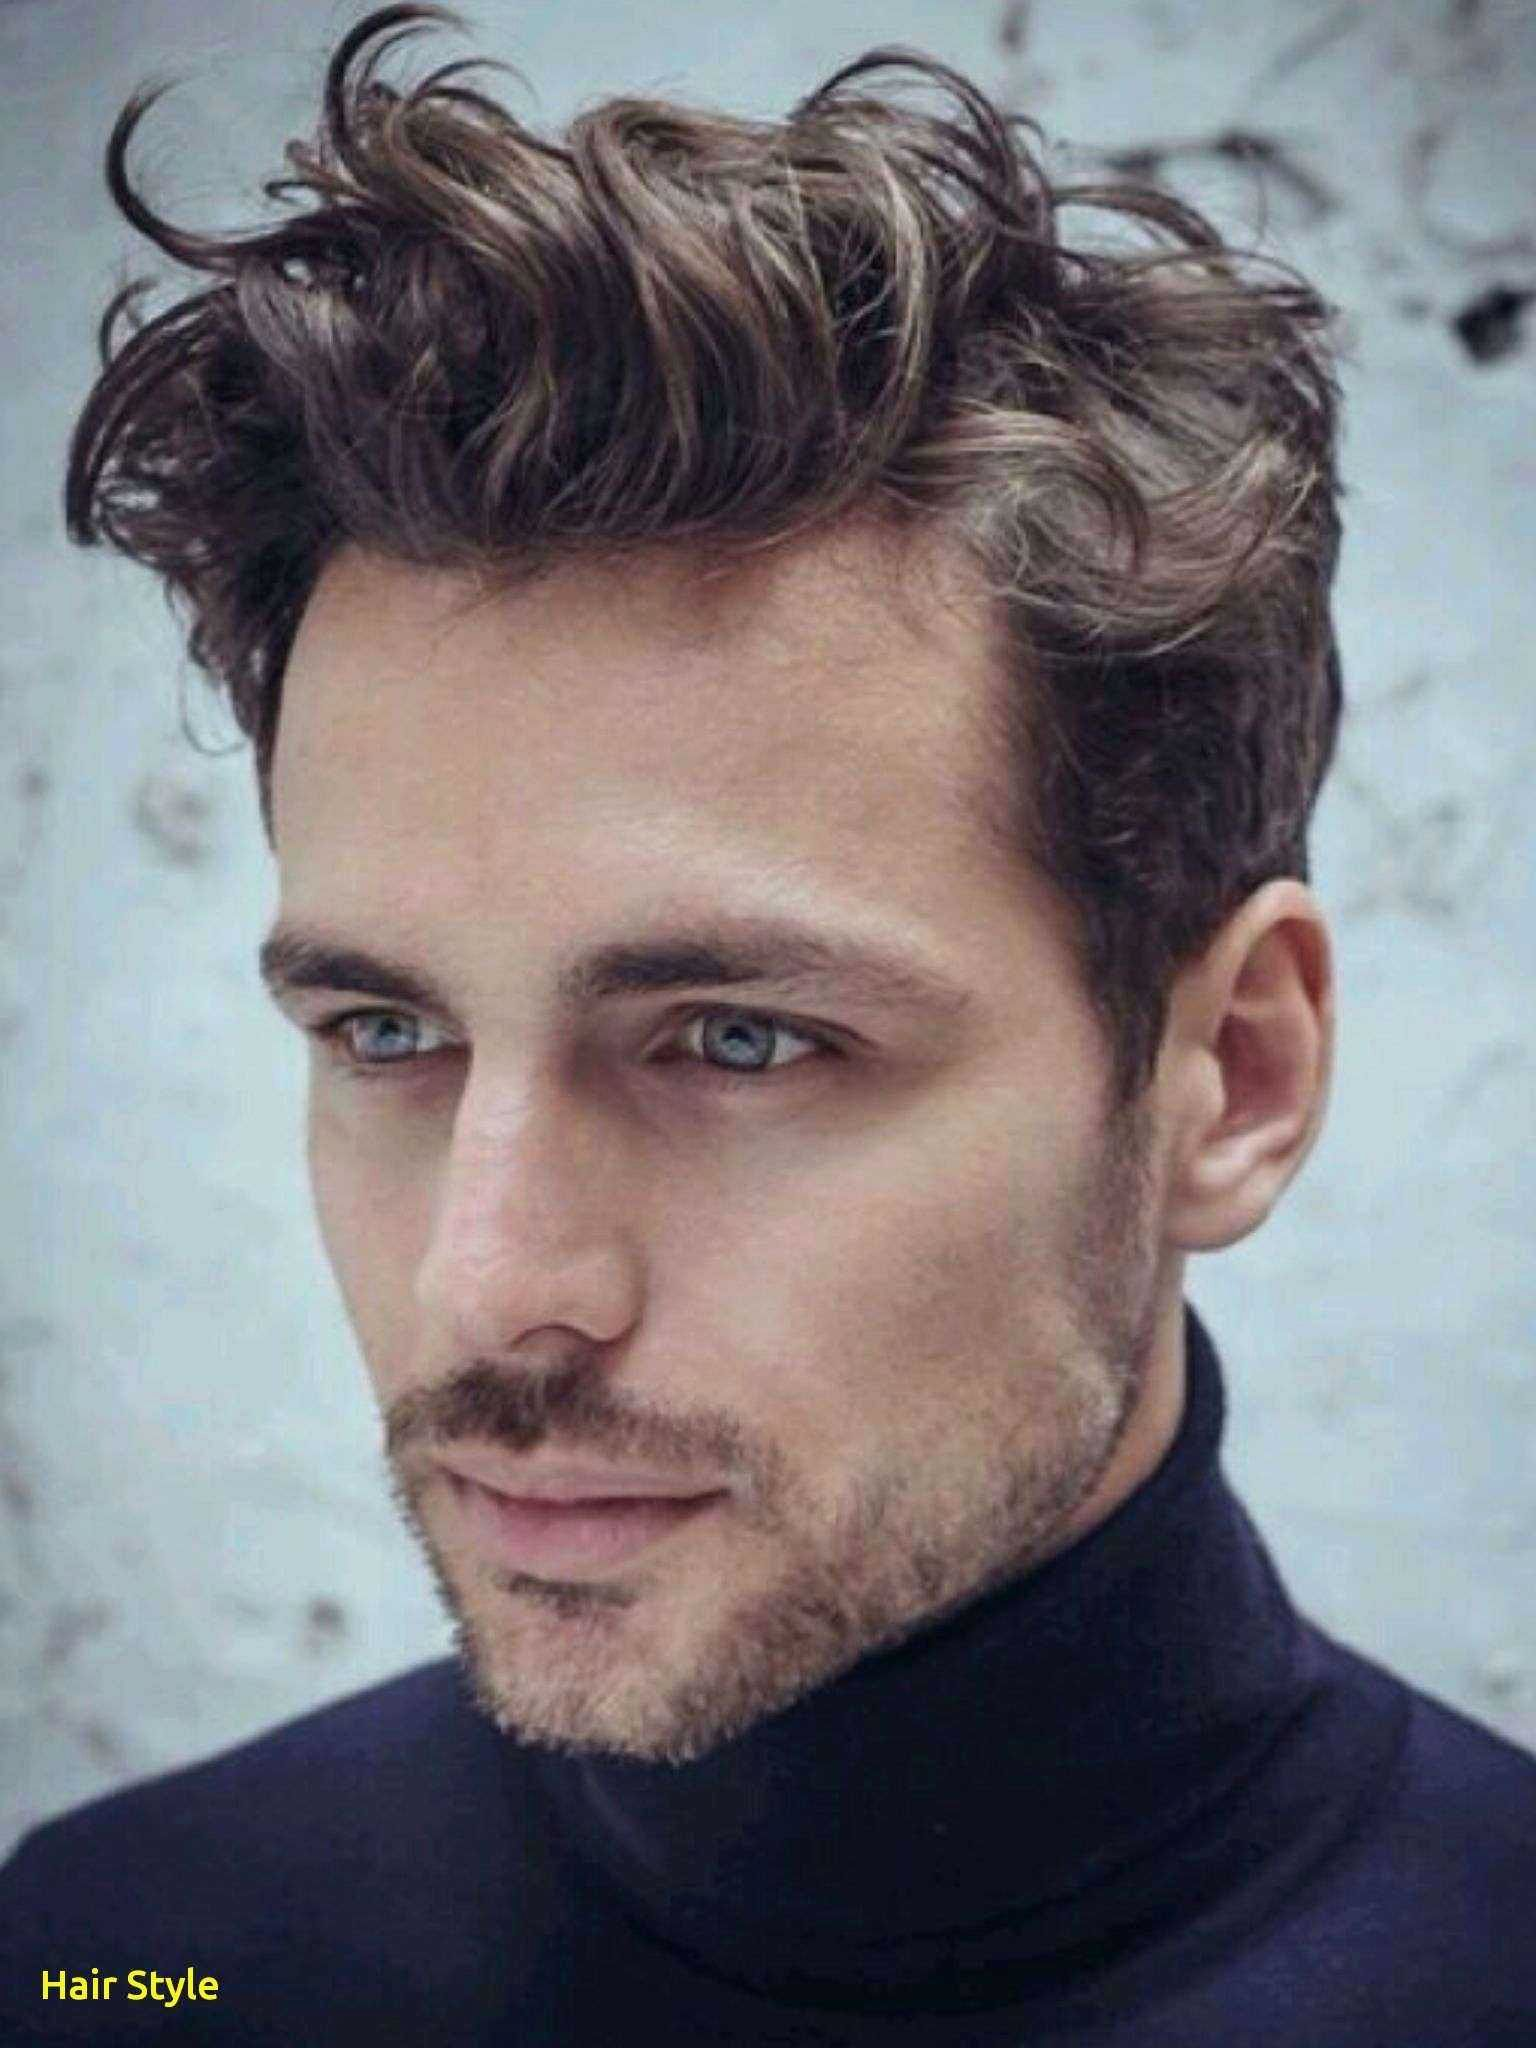 Line Lovely Hairstyle Suits Me Male Wavy Hair Men Curly Hair Men Men Haircut 2018